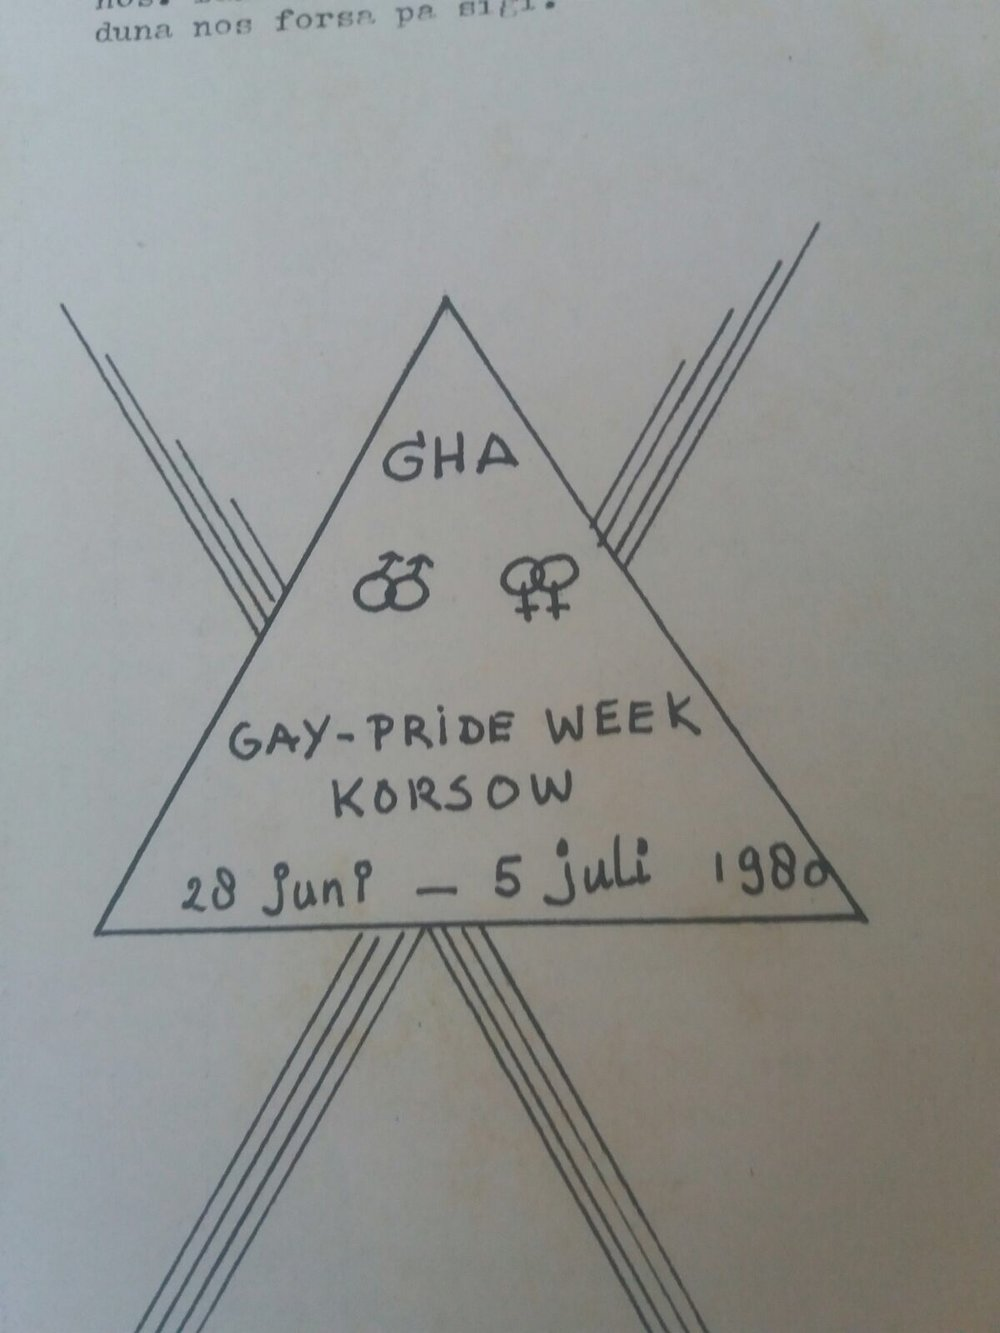 Gay Pride week Curaçao 1980. A radio interview and public theatre play were cancelled and censored respectively, due to homophobia by the Governor of Curaçao. The party, however, still took place.  (Photo from the archive of Grupo Homofilia Antiyano)